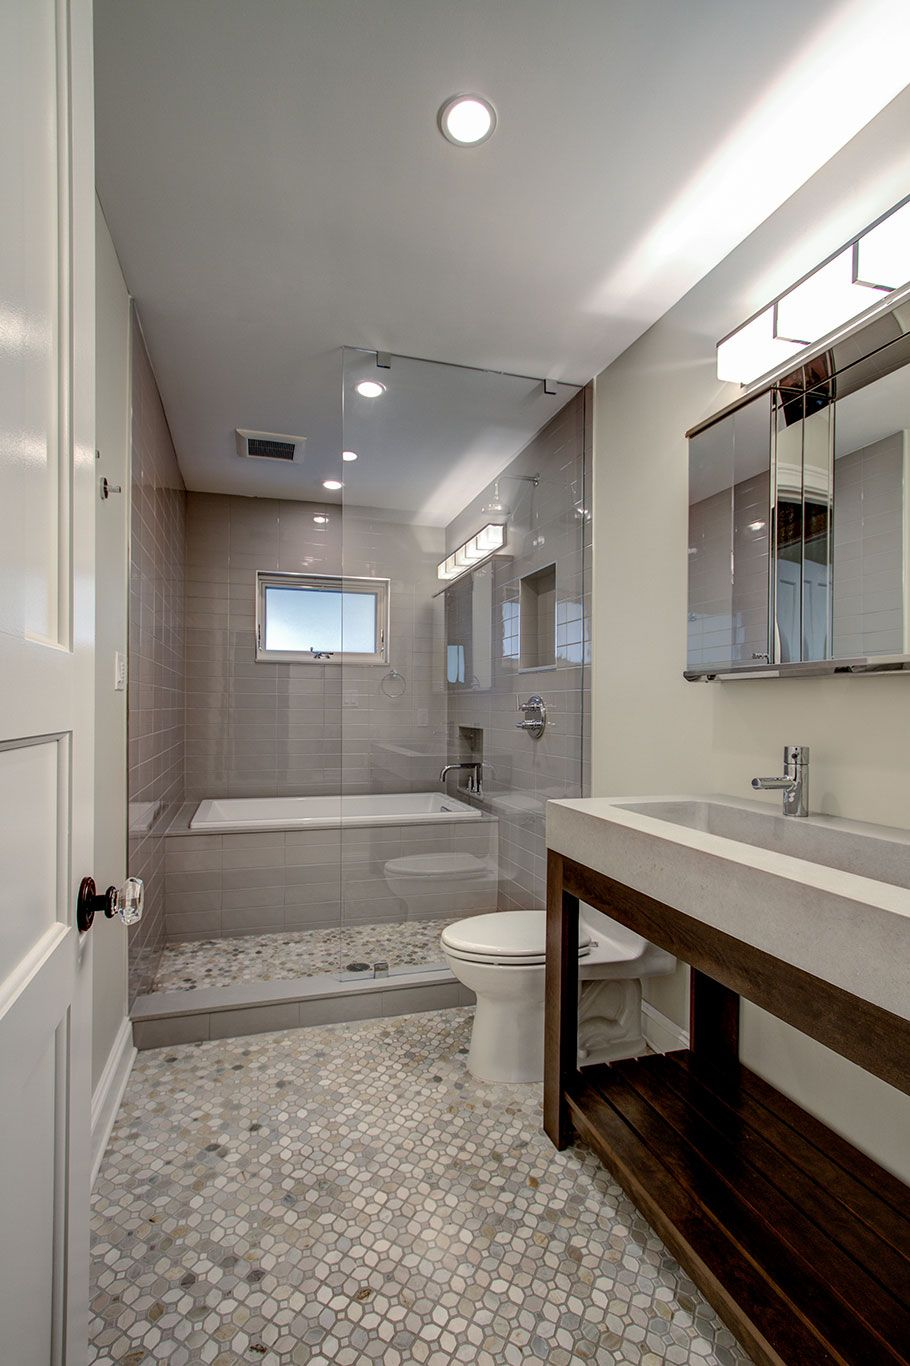 Guest Bathroom With Tub Enclosed Within Glassed In Shower Space Brownstone Renovation In Park Narrow Bathroom Designs Bathroom Tub Shower Top Bathroom Design